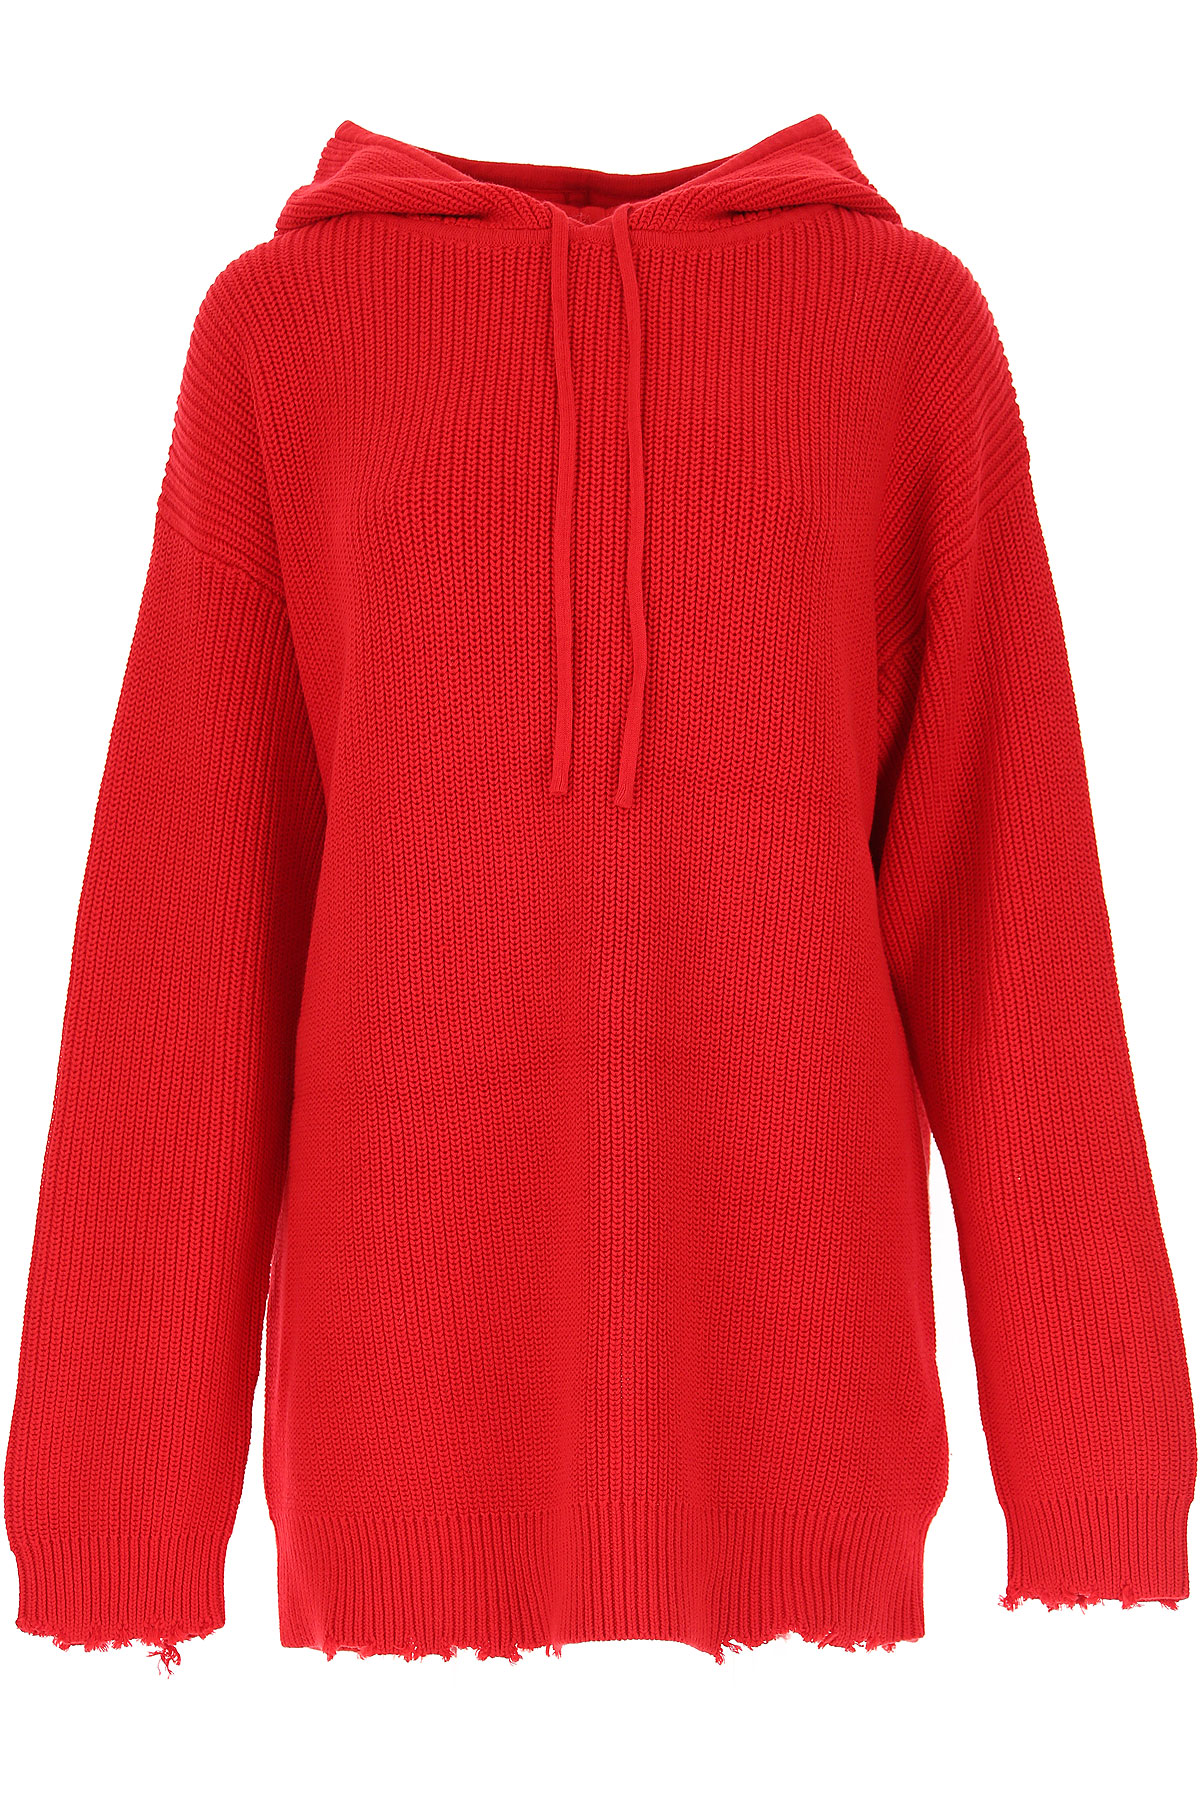 Image of RtA Sweater for Women Jumper, Cherry, Cotton, 2017, 2 4